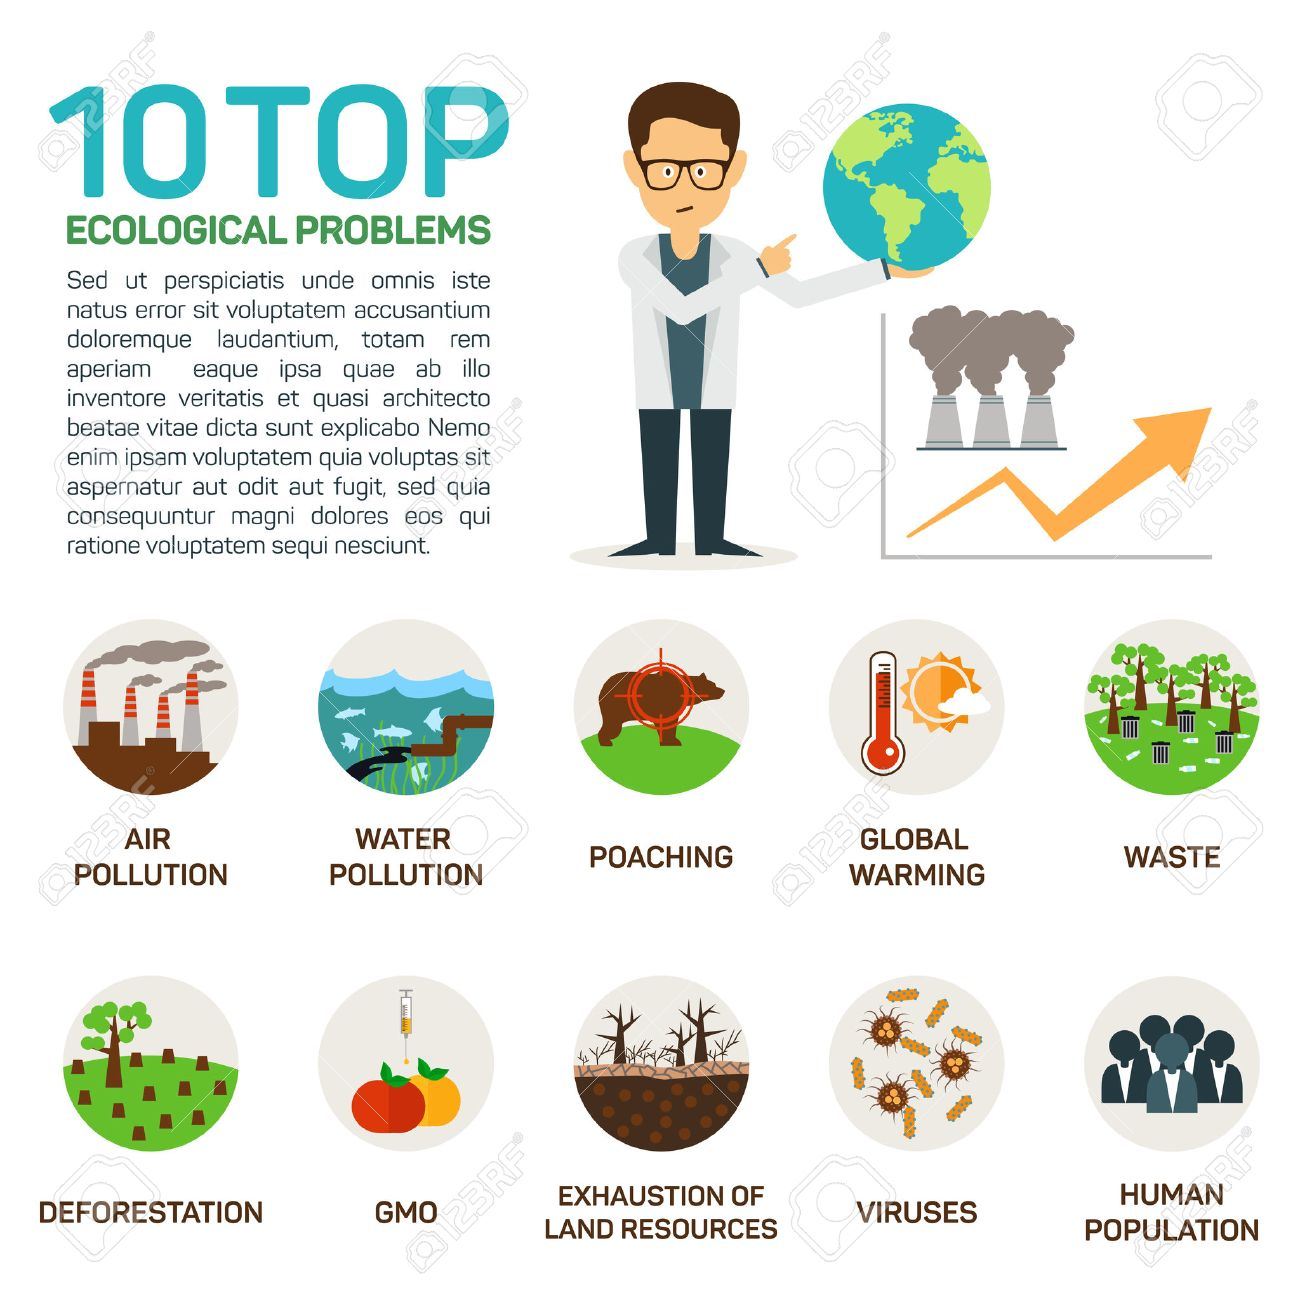 illustration of top 10 ecological problems. Air and water polution, poaching, global warming, deforestation, gmo, viruses, exhaustion, human population. - 54272281